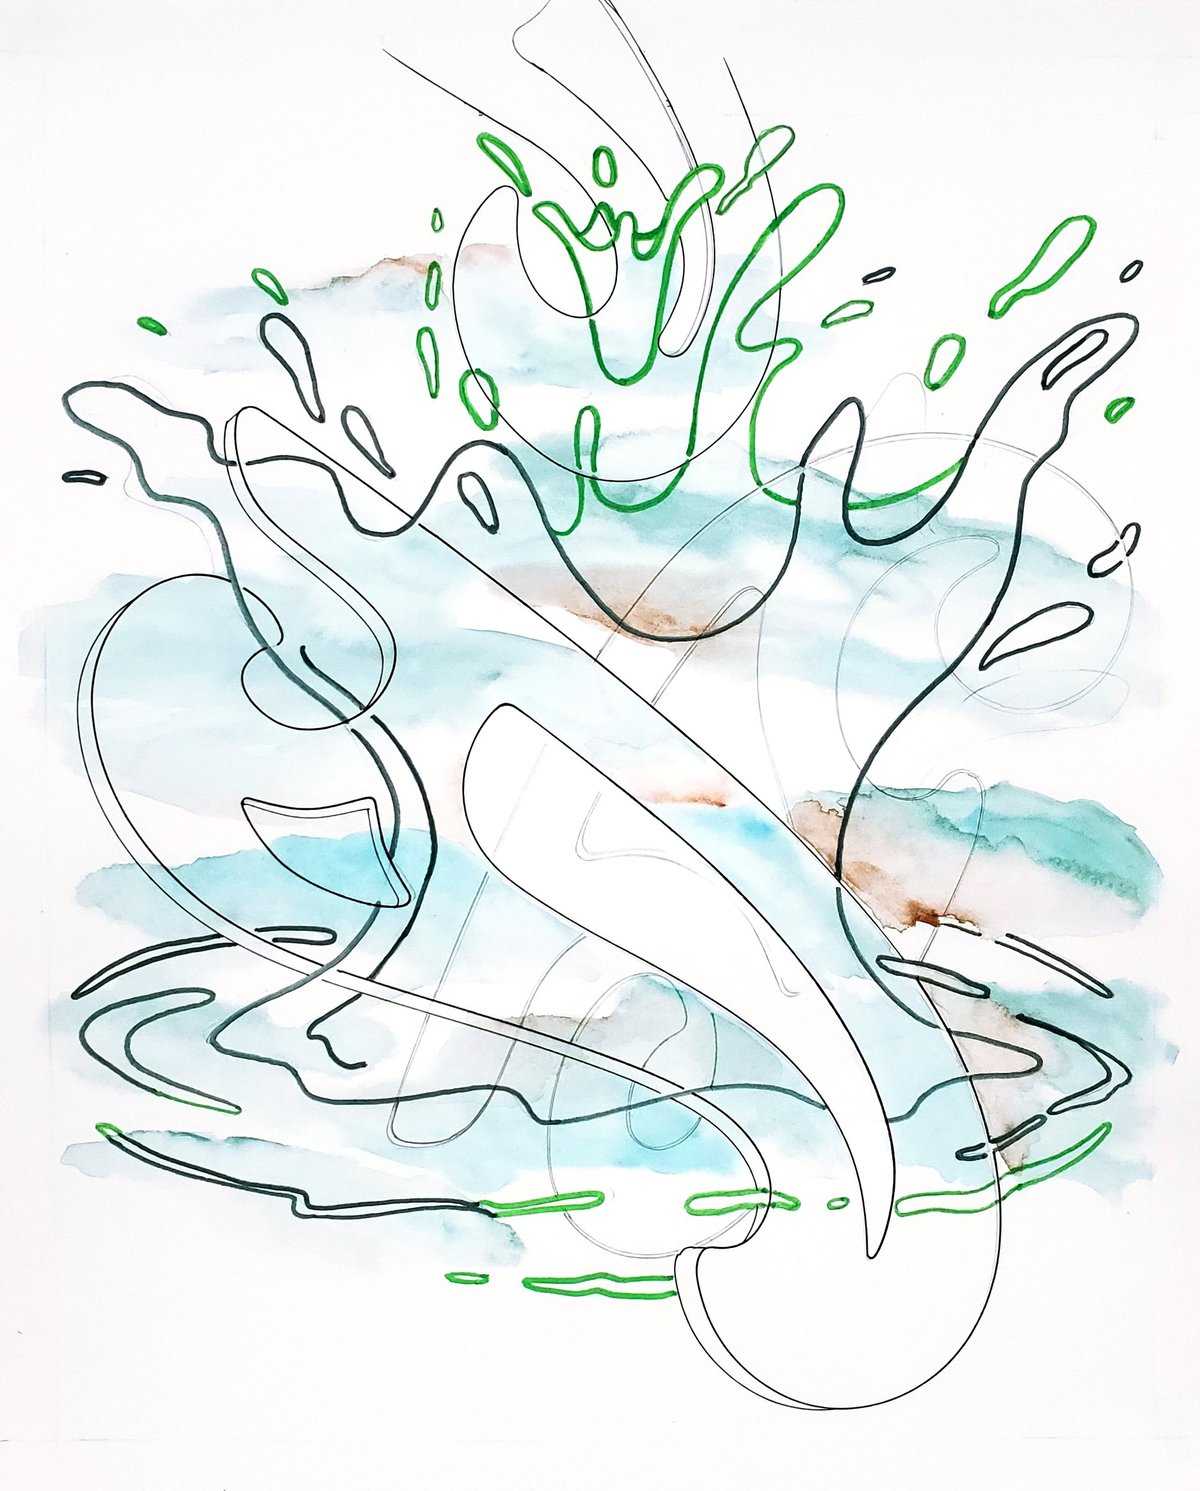 Sharon Lawless, Water Drawing 13, 2020